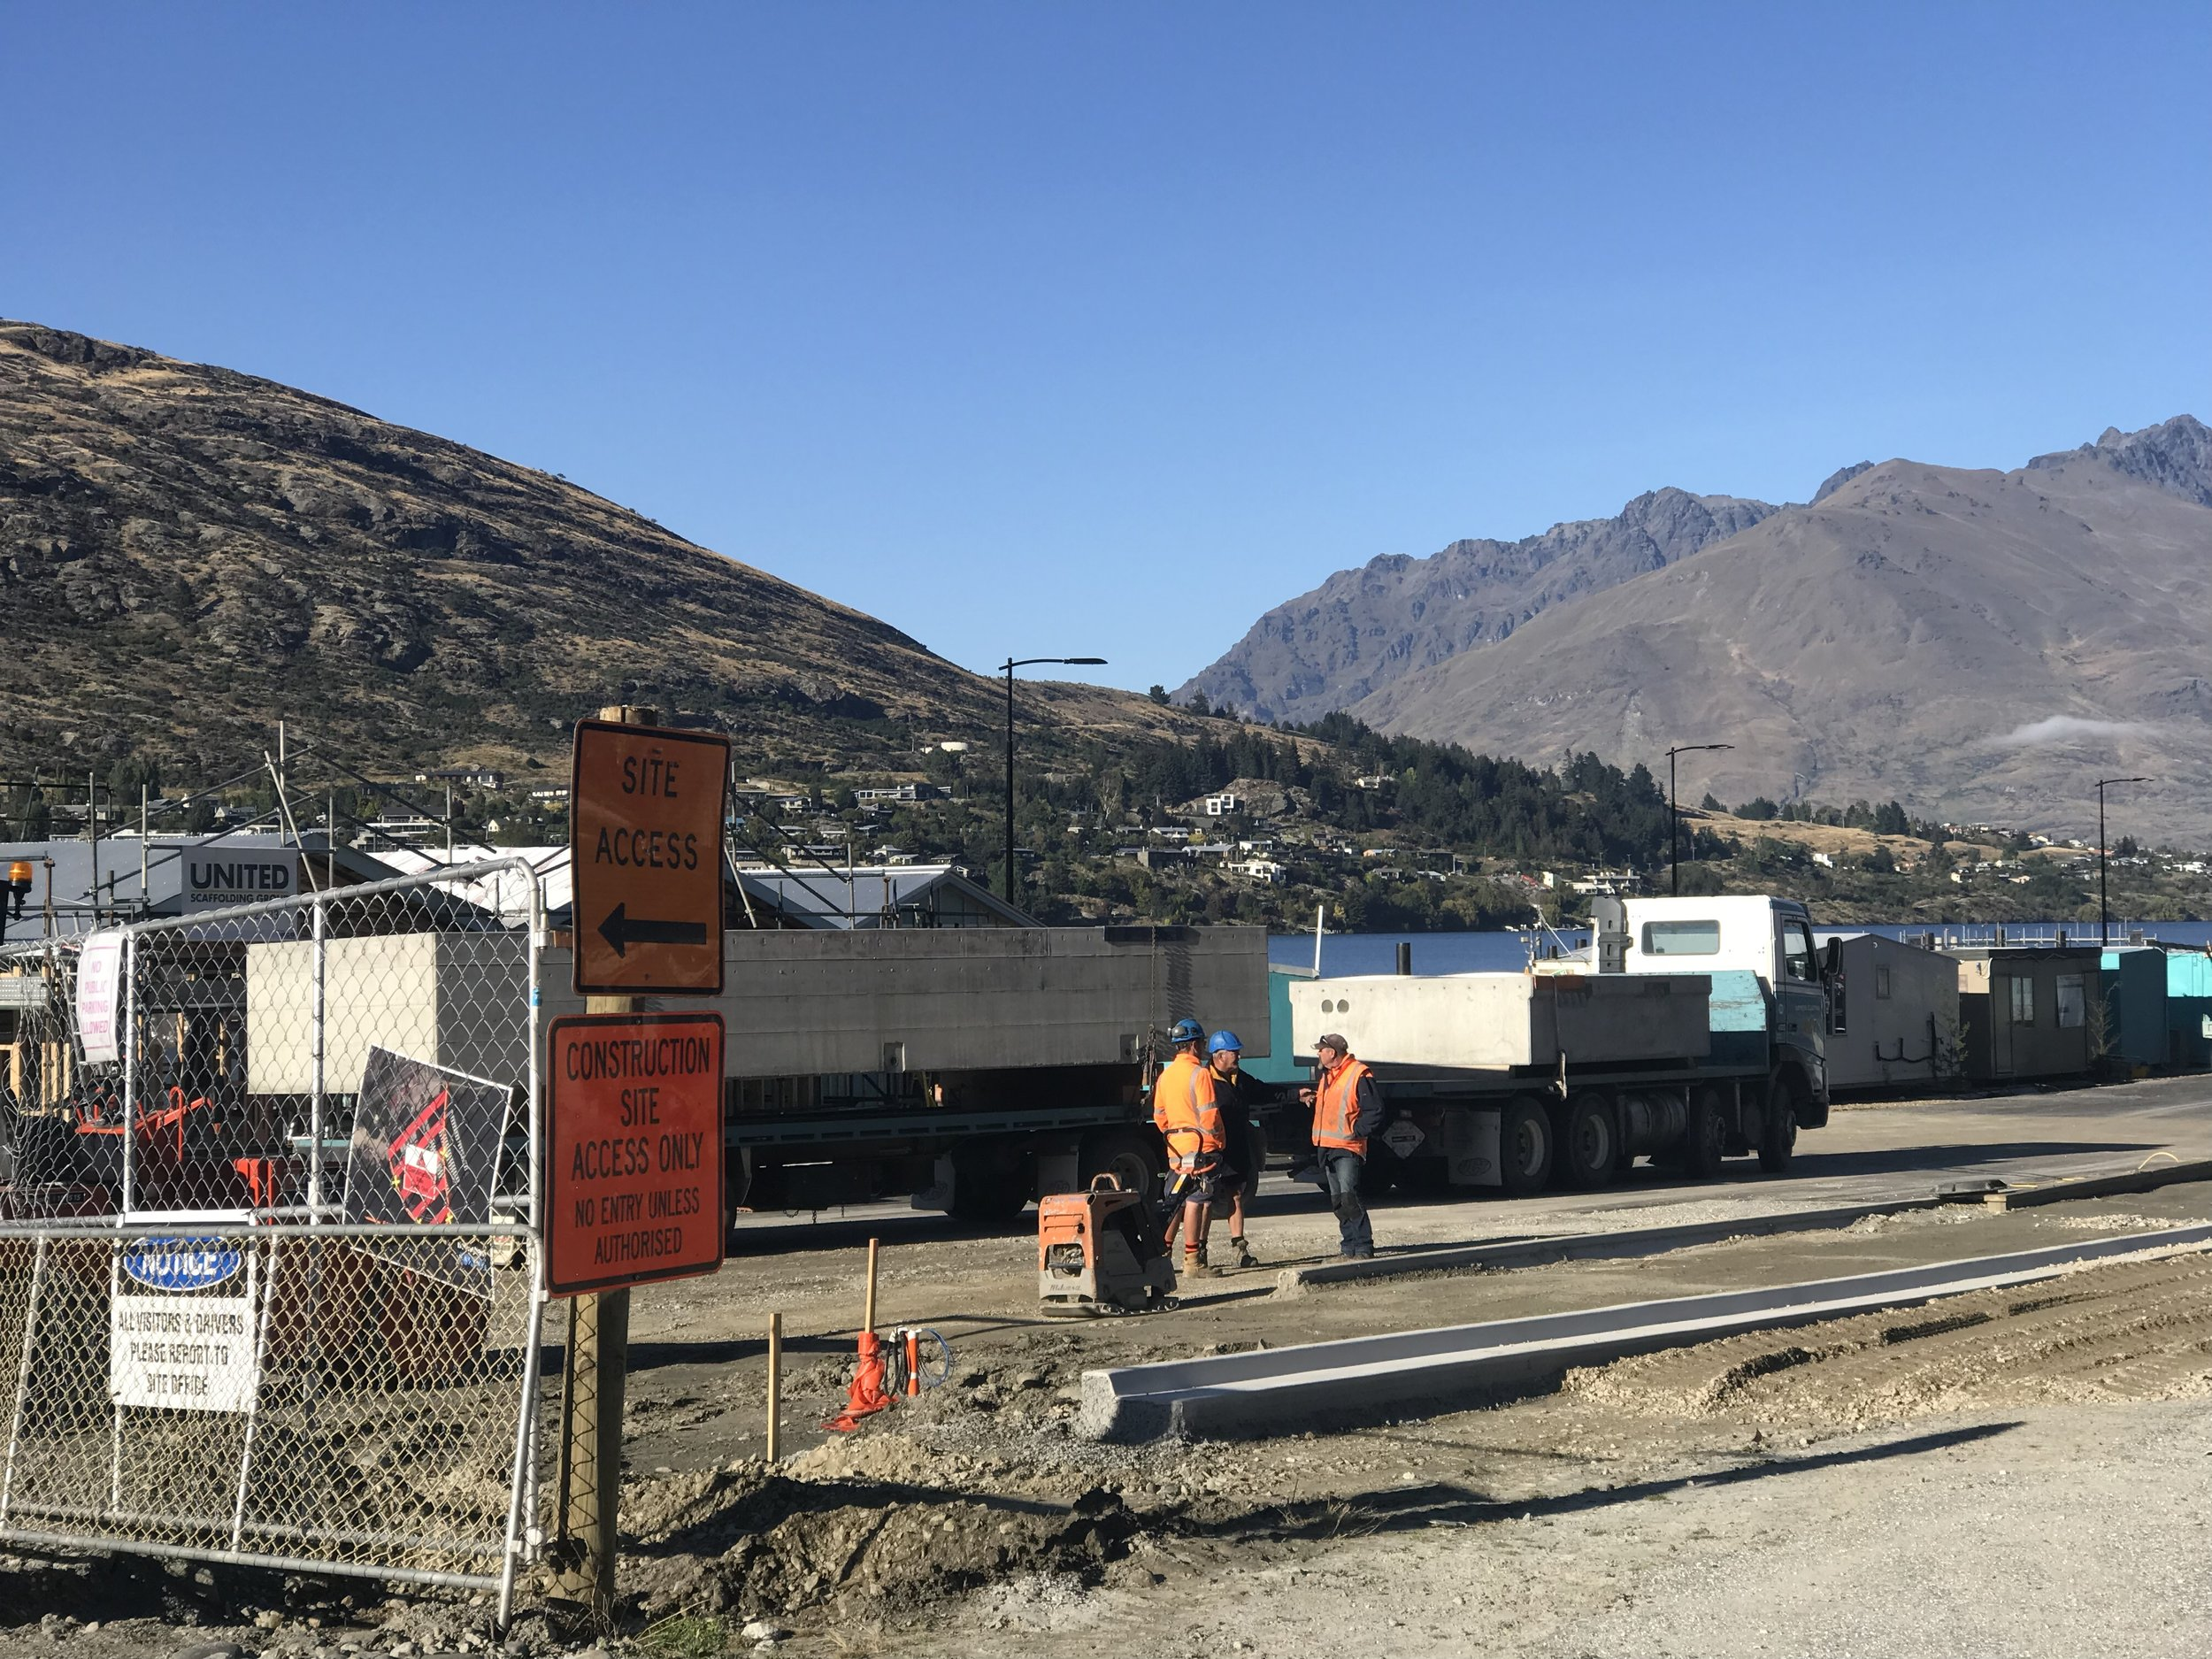 Queenstown construction site (images by Jacqui Gibson).